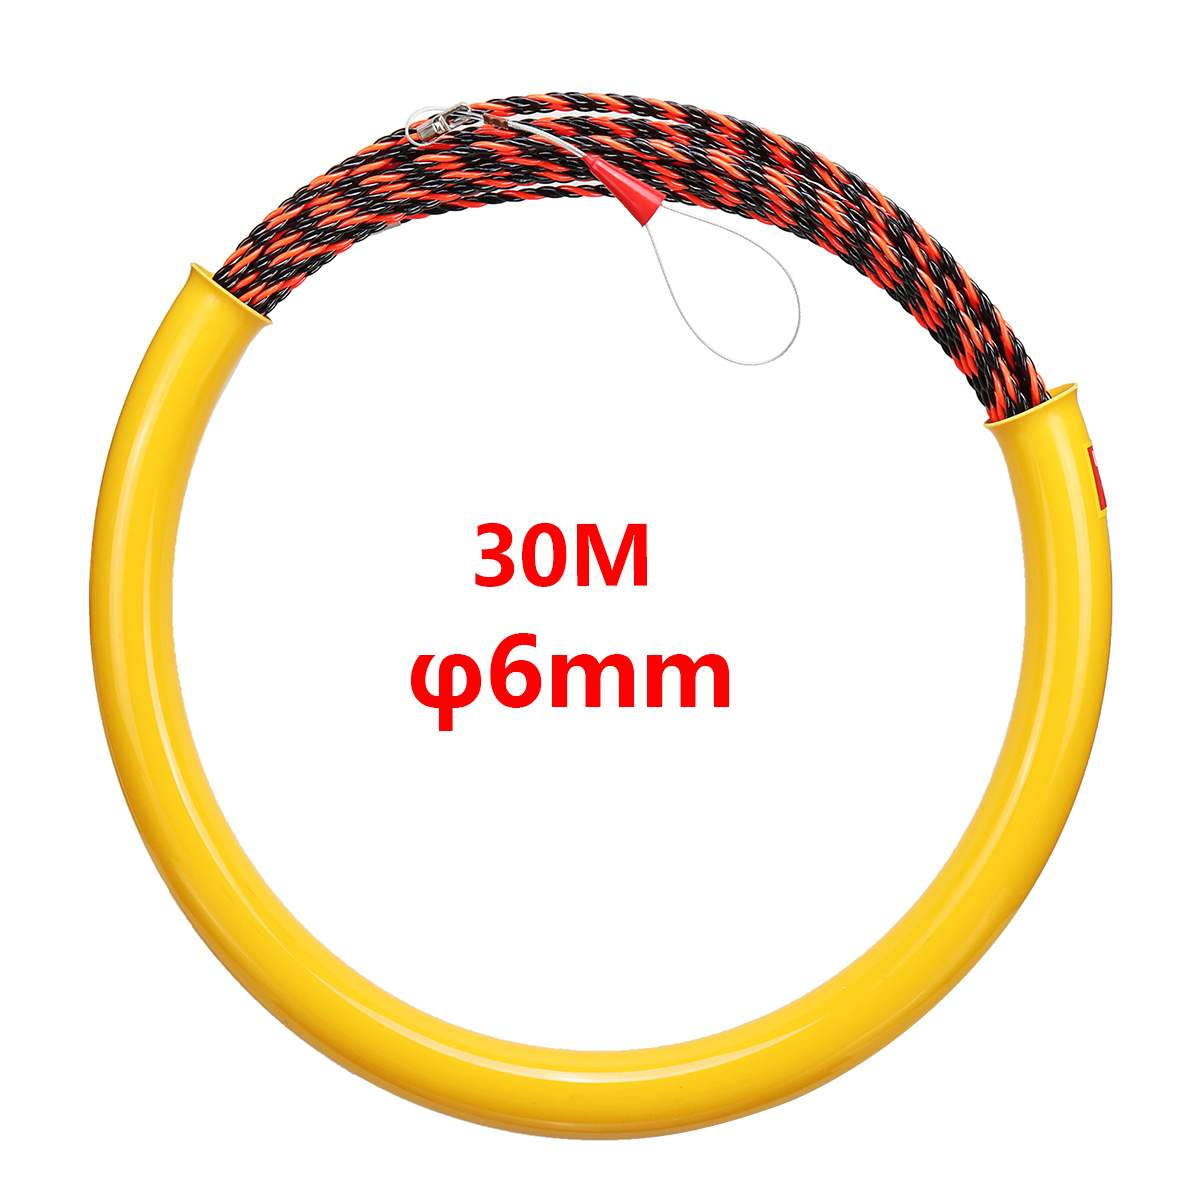 6mm*30m Nylon Fish Tape Electric Cable Push Puller Snake Conduit Ducting Cable Rodder Wire Guide6mm*30m Nylon Fish Tape Electric Cable Push Puller Snake Conduit Ducting Cable Rodder Wire Guide